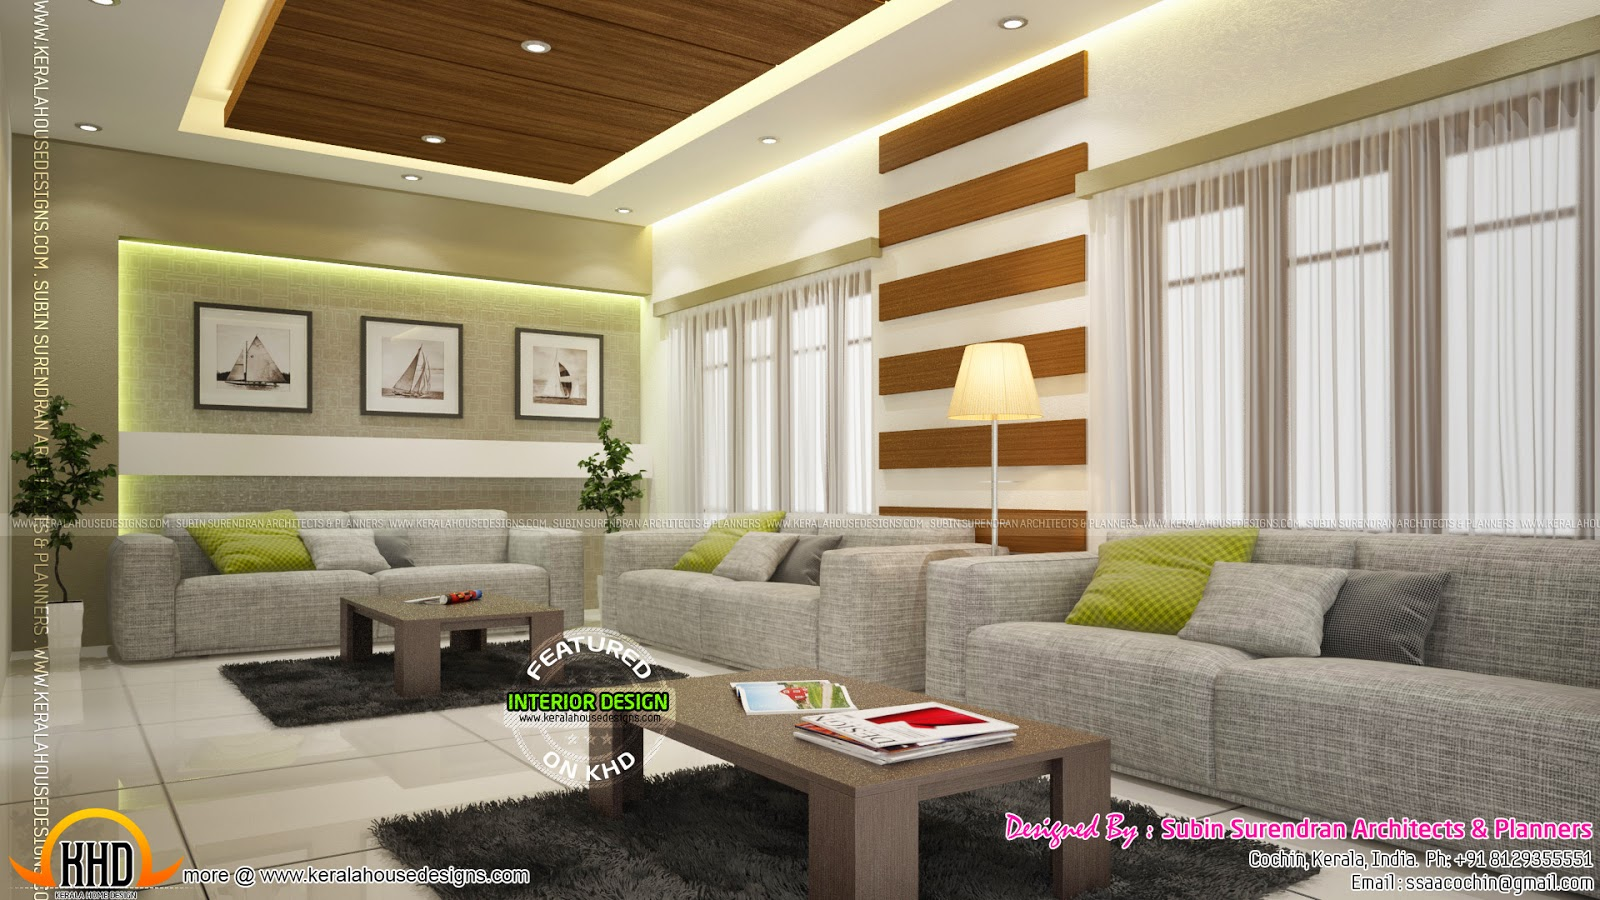 Beautiful home interior designs kerala home design and for Beautiful room design